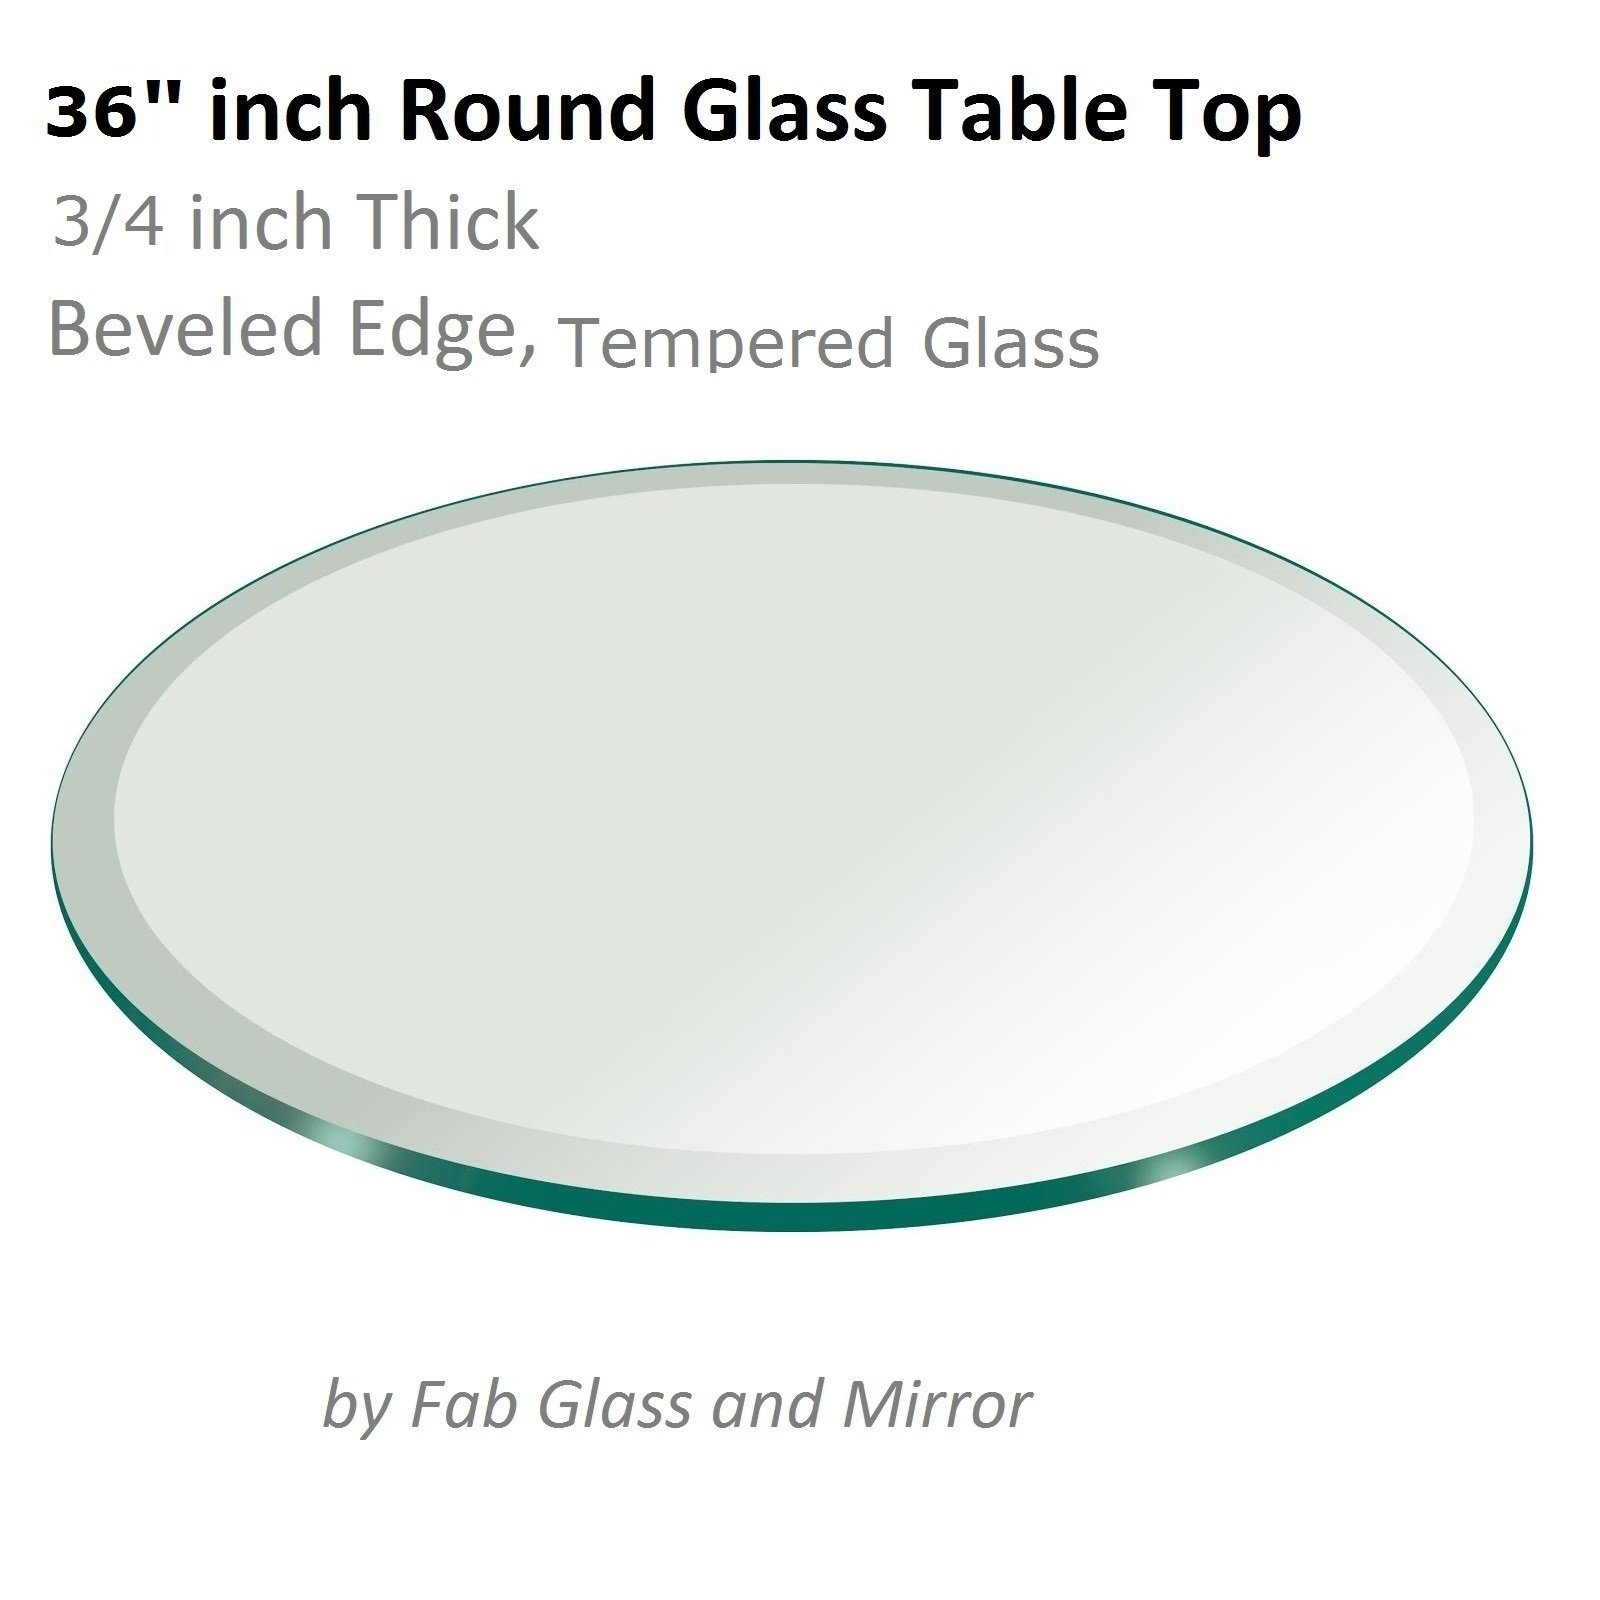 36'' Inch Round Glass Table Top 3/4'' Thick Tempered Beveled Edge by Fab Glass and Mirror